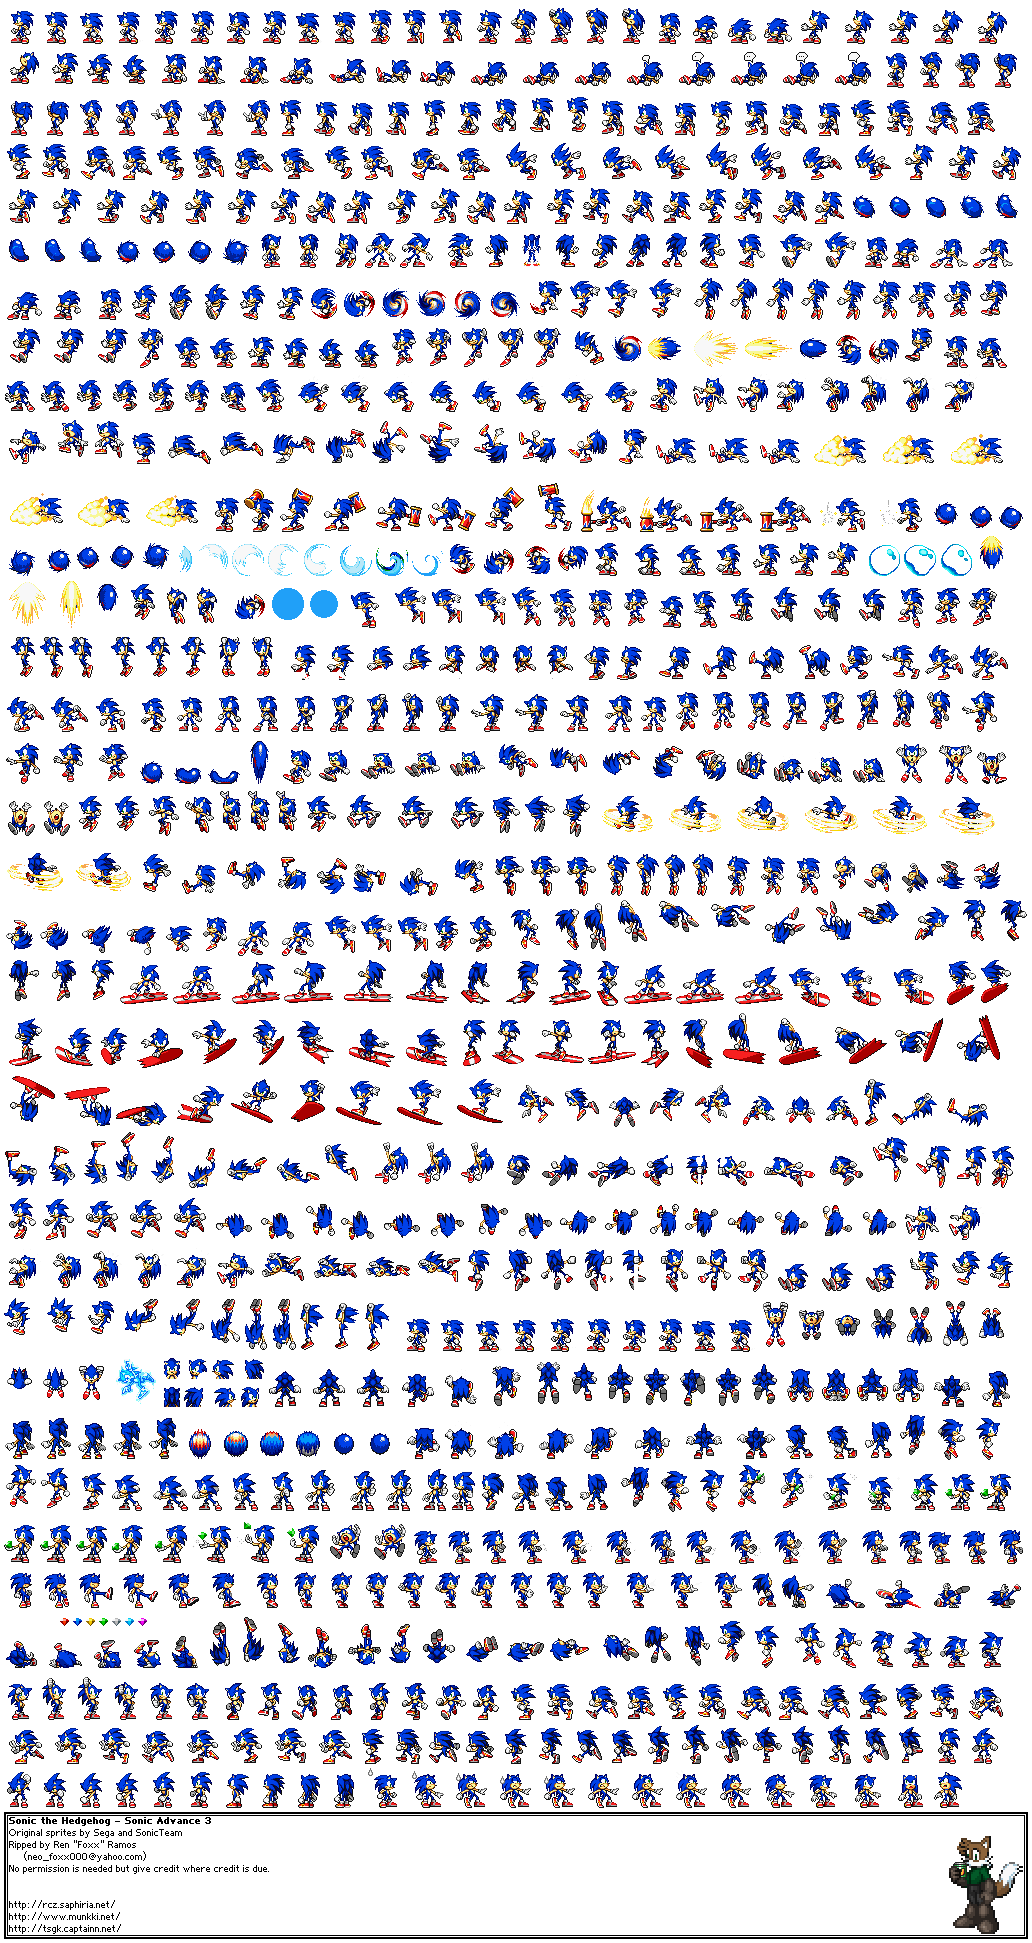 sonic the hedgehog objects sprite strip png